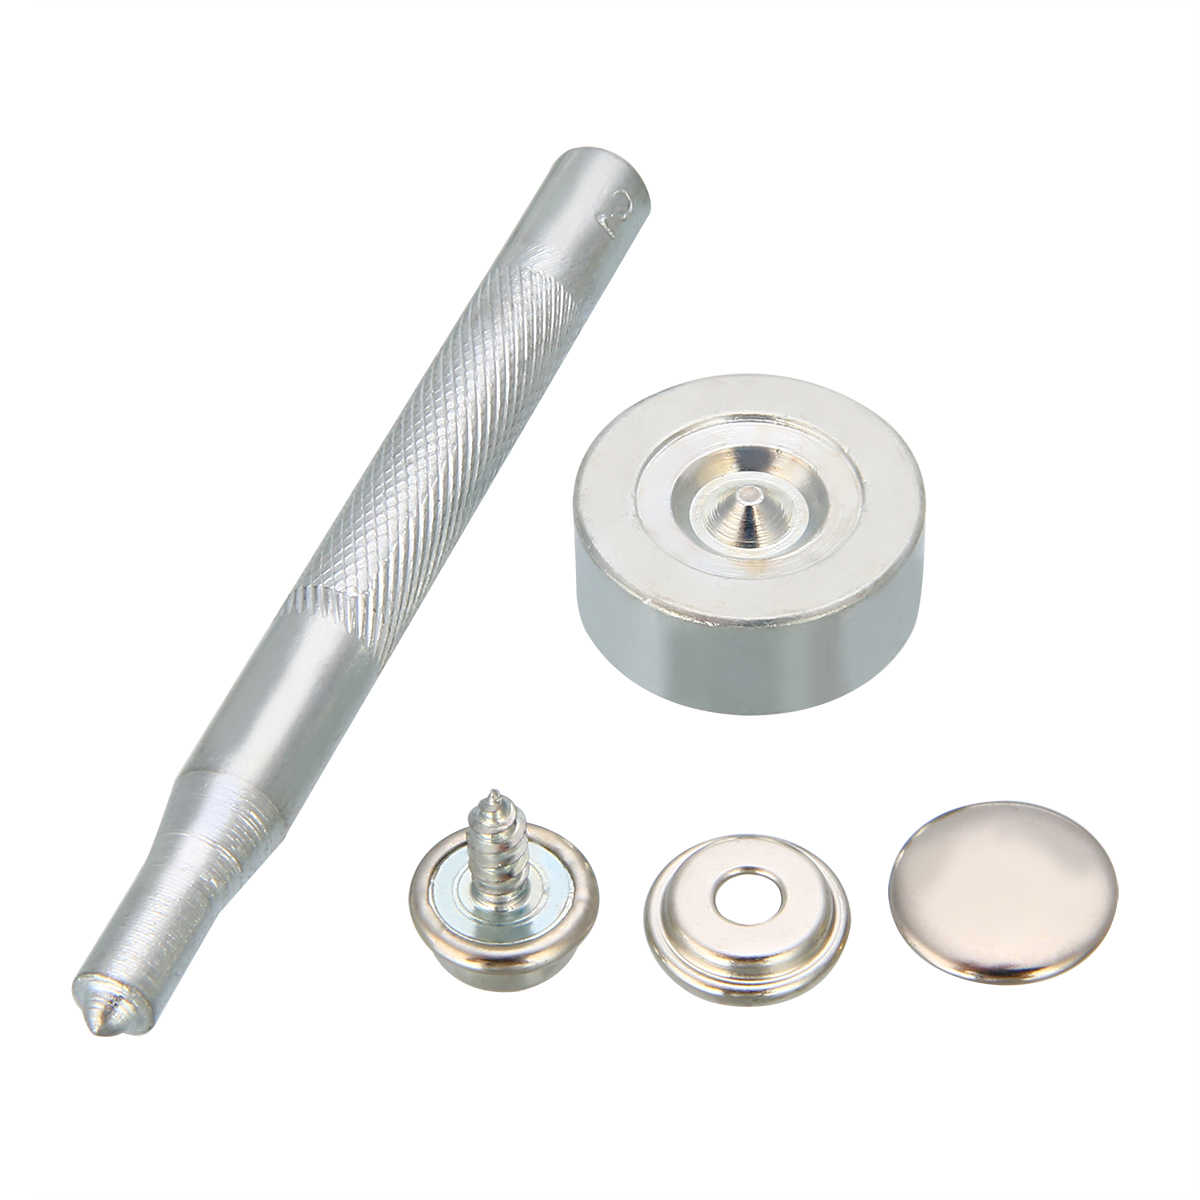 Mayitr 50 Set Stainless Steel Push Button Snap Fastener Screw Kit W Tool For Tonneau Cover Boat Cover Diy Material Accessories Buttons Aliexpress